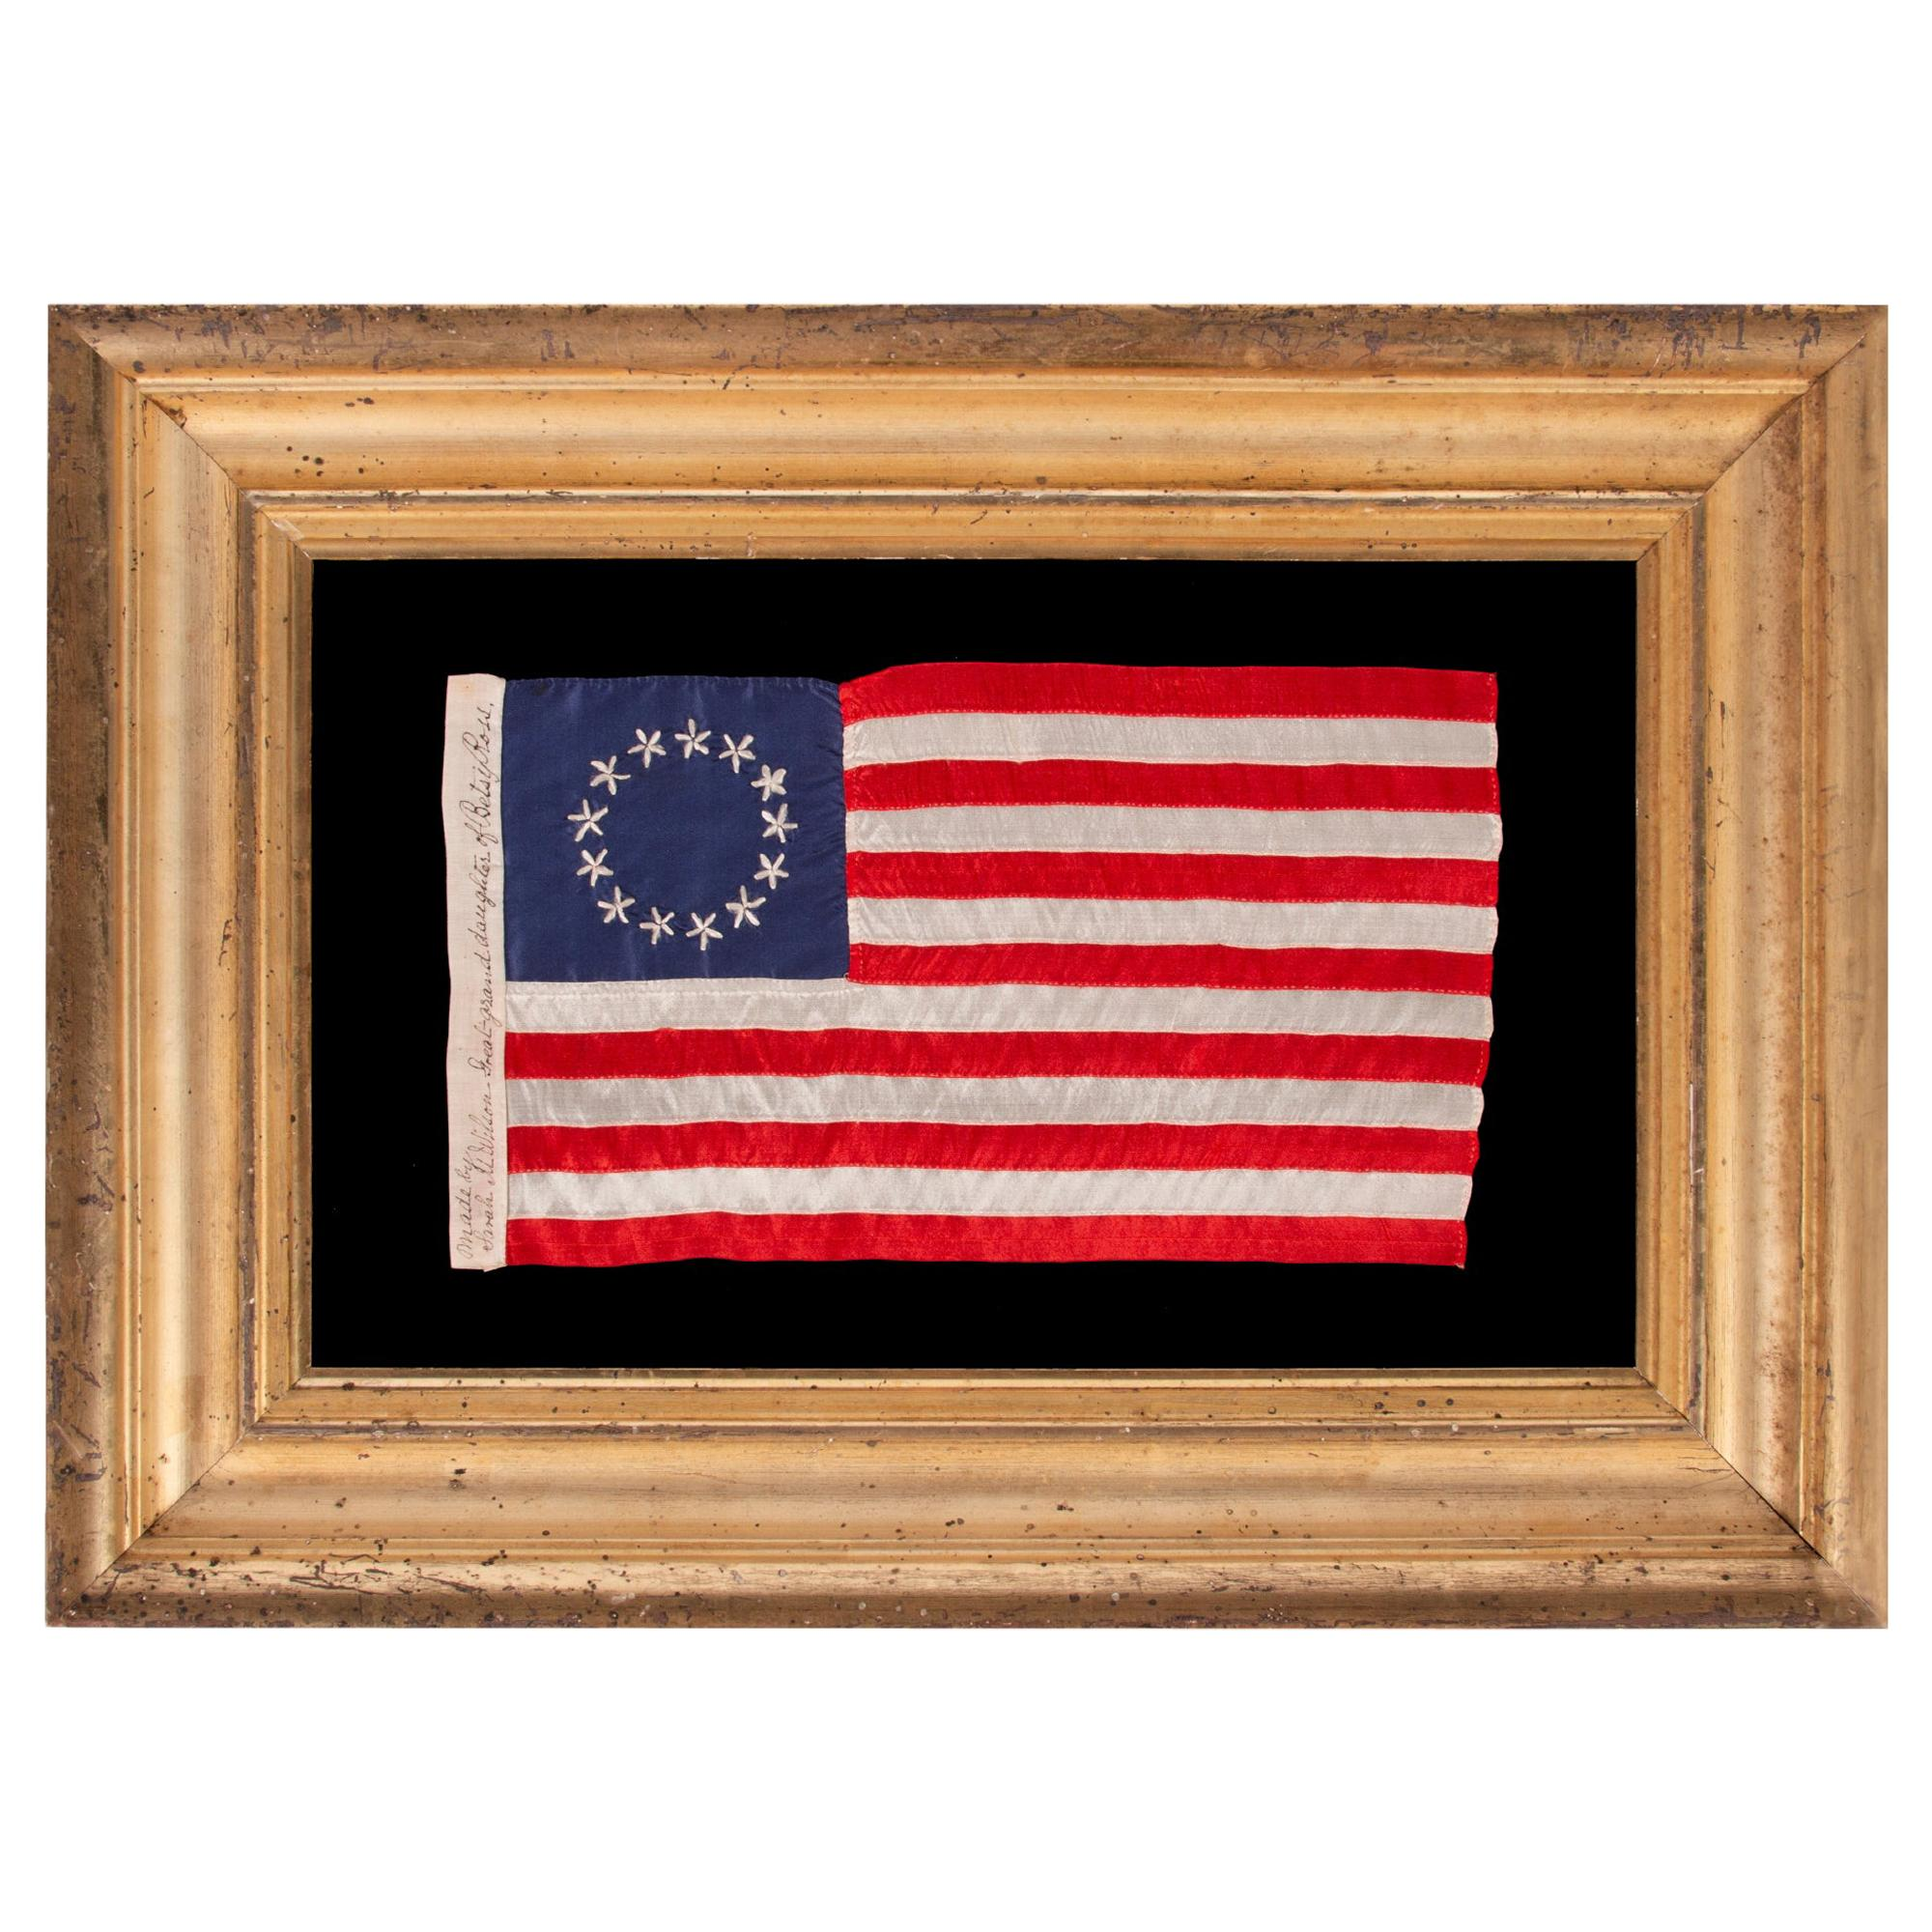 13 Star Betsy Ross Pattern Flag, Signed by Great Granddaughter Sarah Wilson